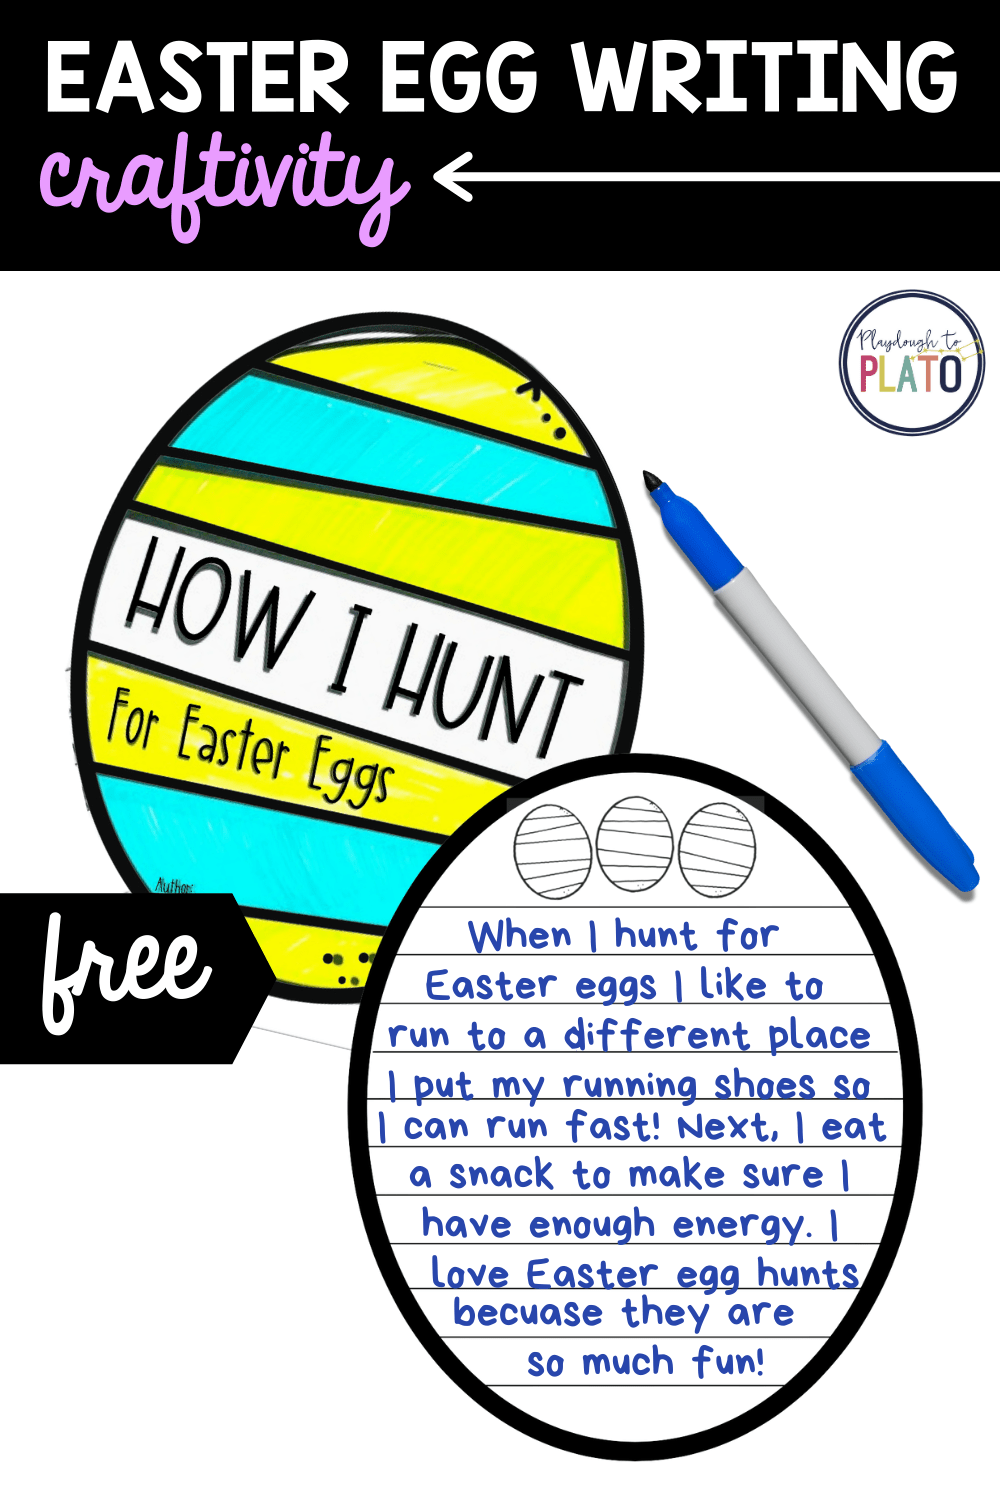 Easter Egg Writing Craftivity